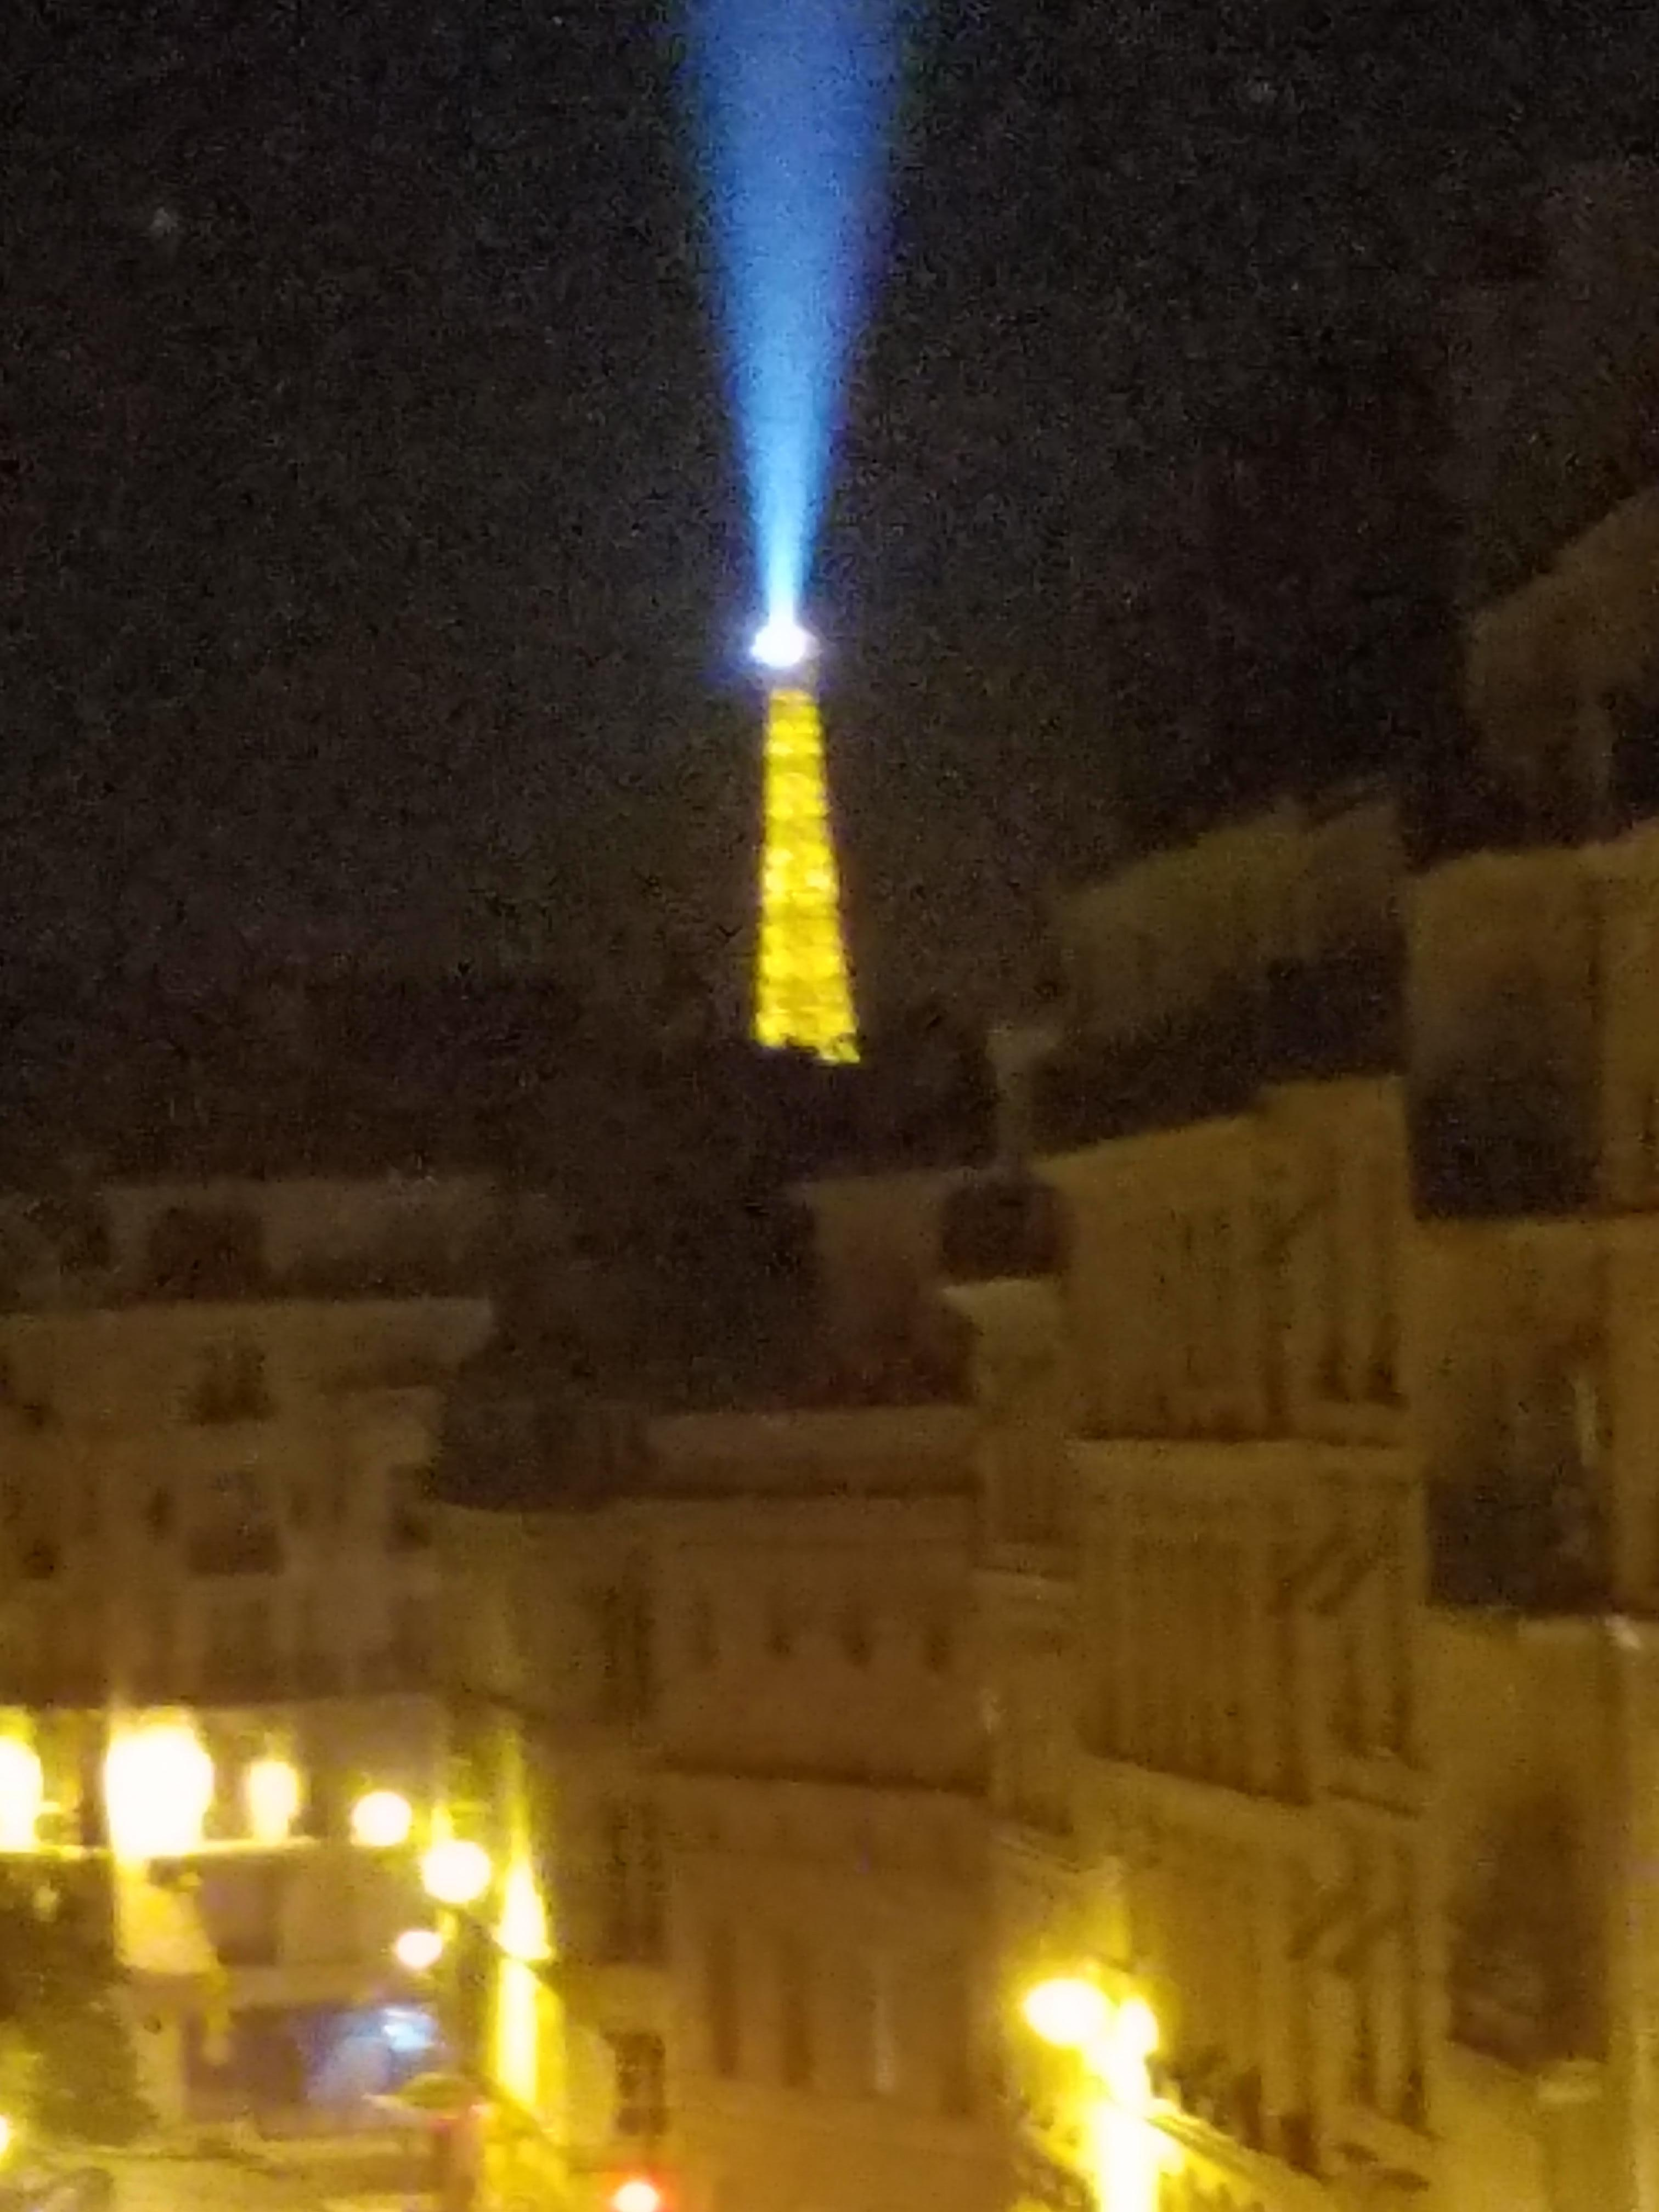 Eiffel Tower from the room at night!